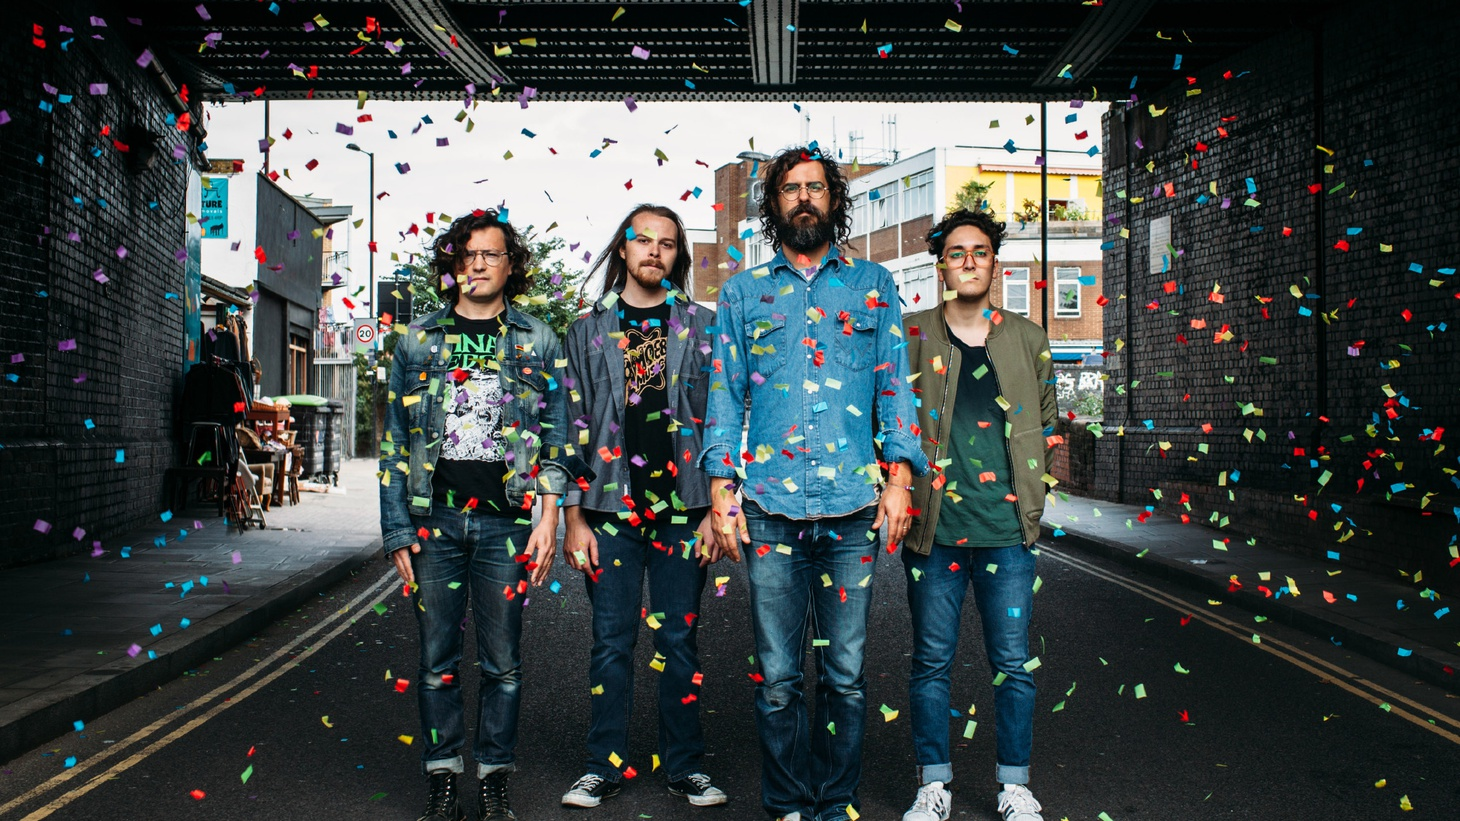 Seven albums in and White Denim still know how to rock. Their latest album, Side Effects, comes 11 years into a career that has kept their supercharged and wired guitar sound at the forefront of their music.